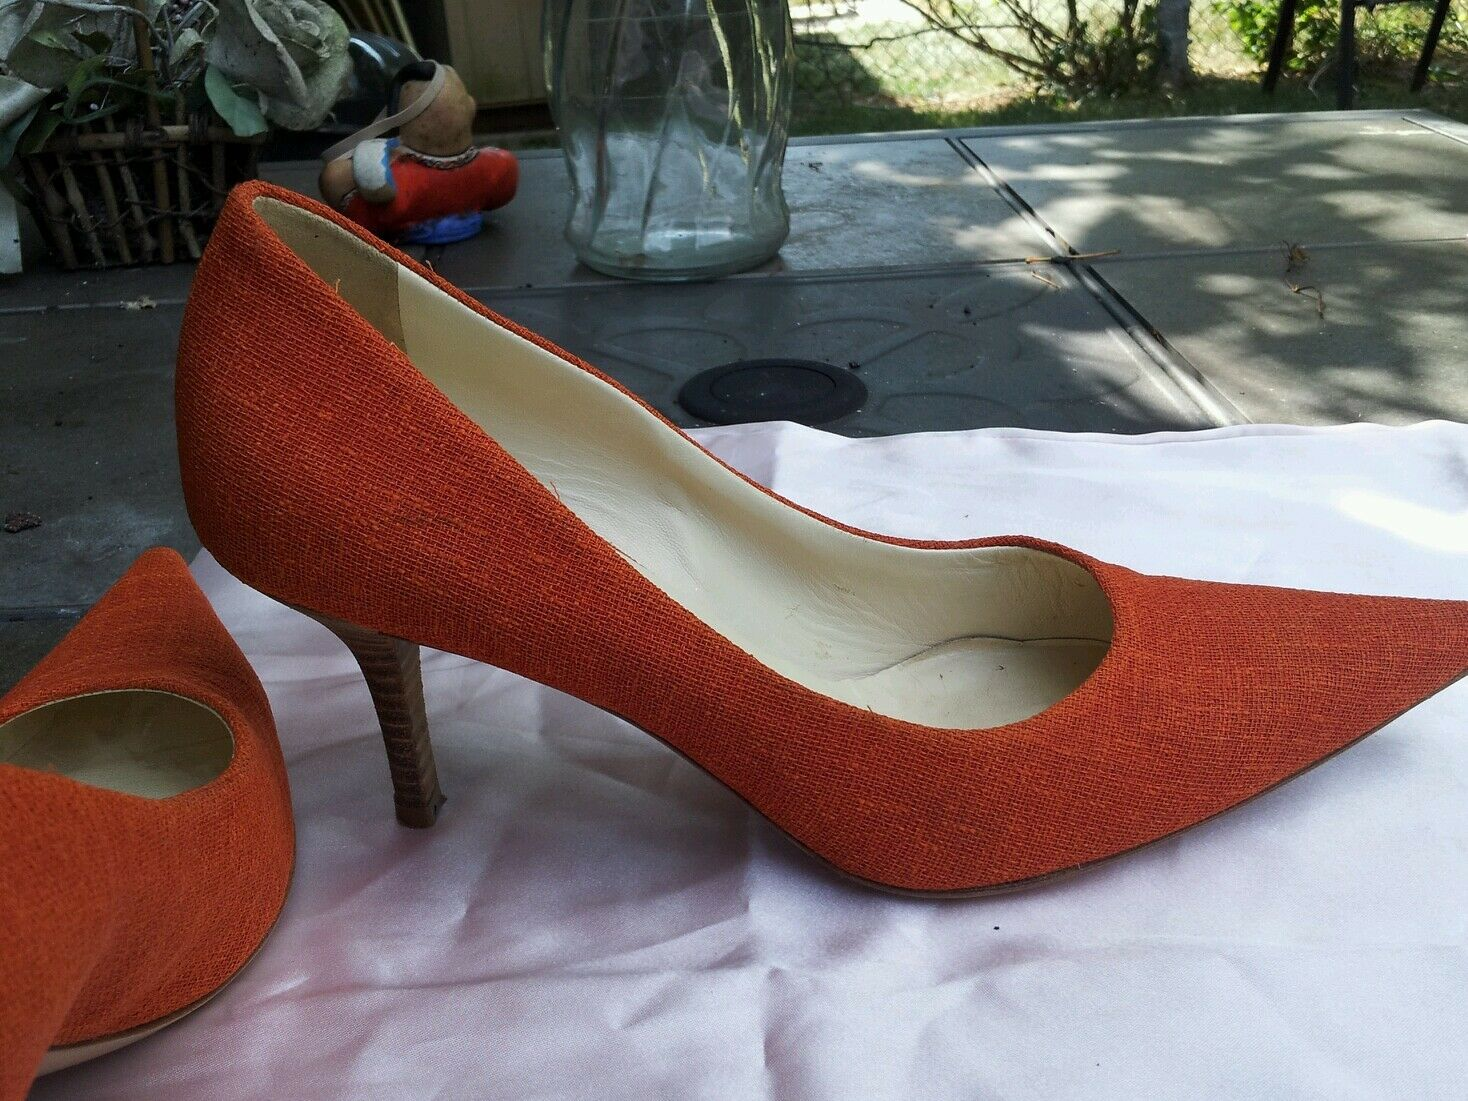 MIU MIU Damens's made orange fabric schuhe sz.36.5/6.5 US made Damens's in  212398